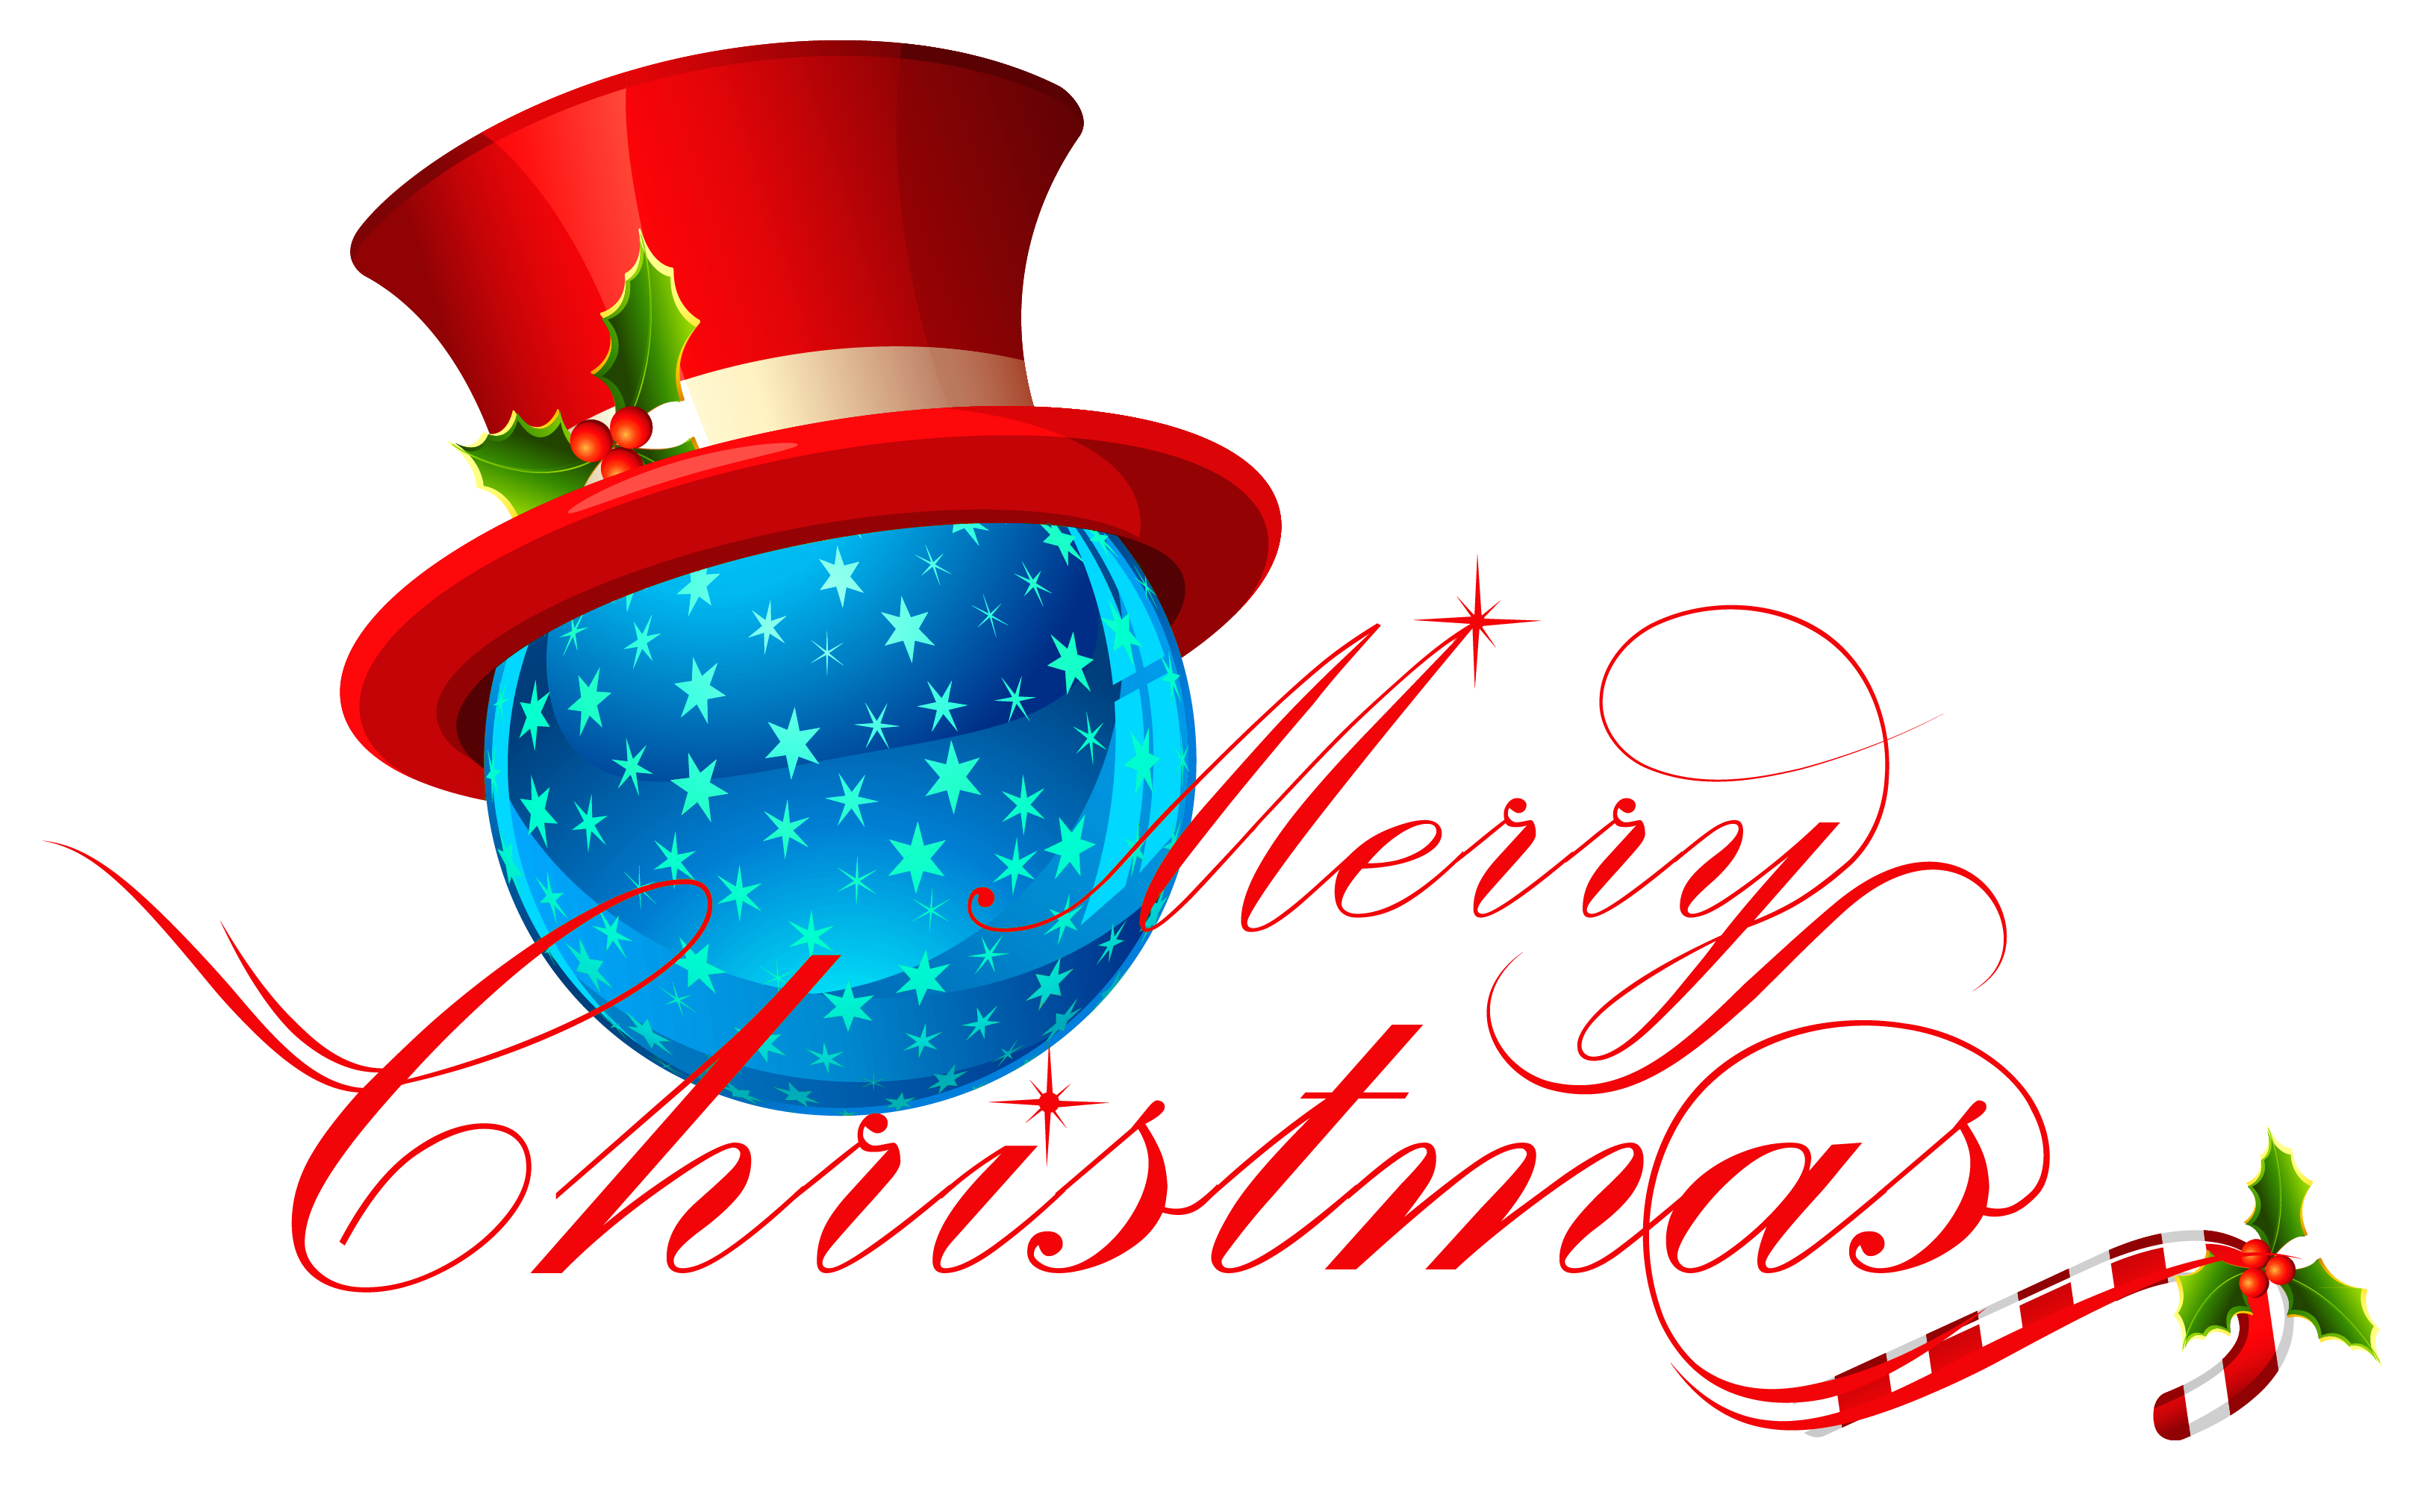 Christian Merry Christmas Clipart Free Download Best Christian